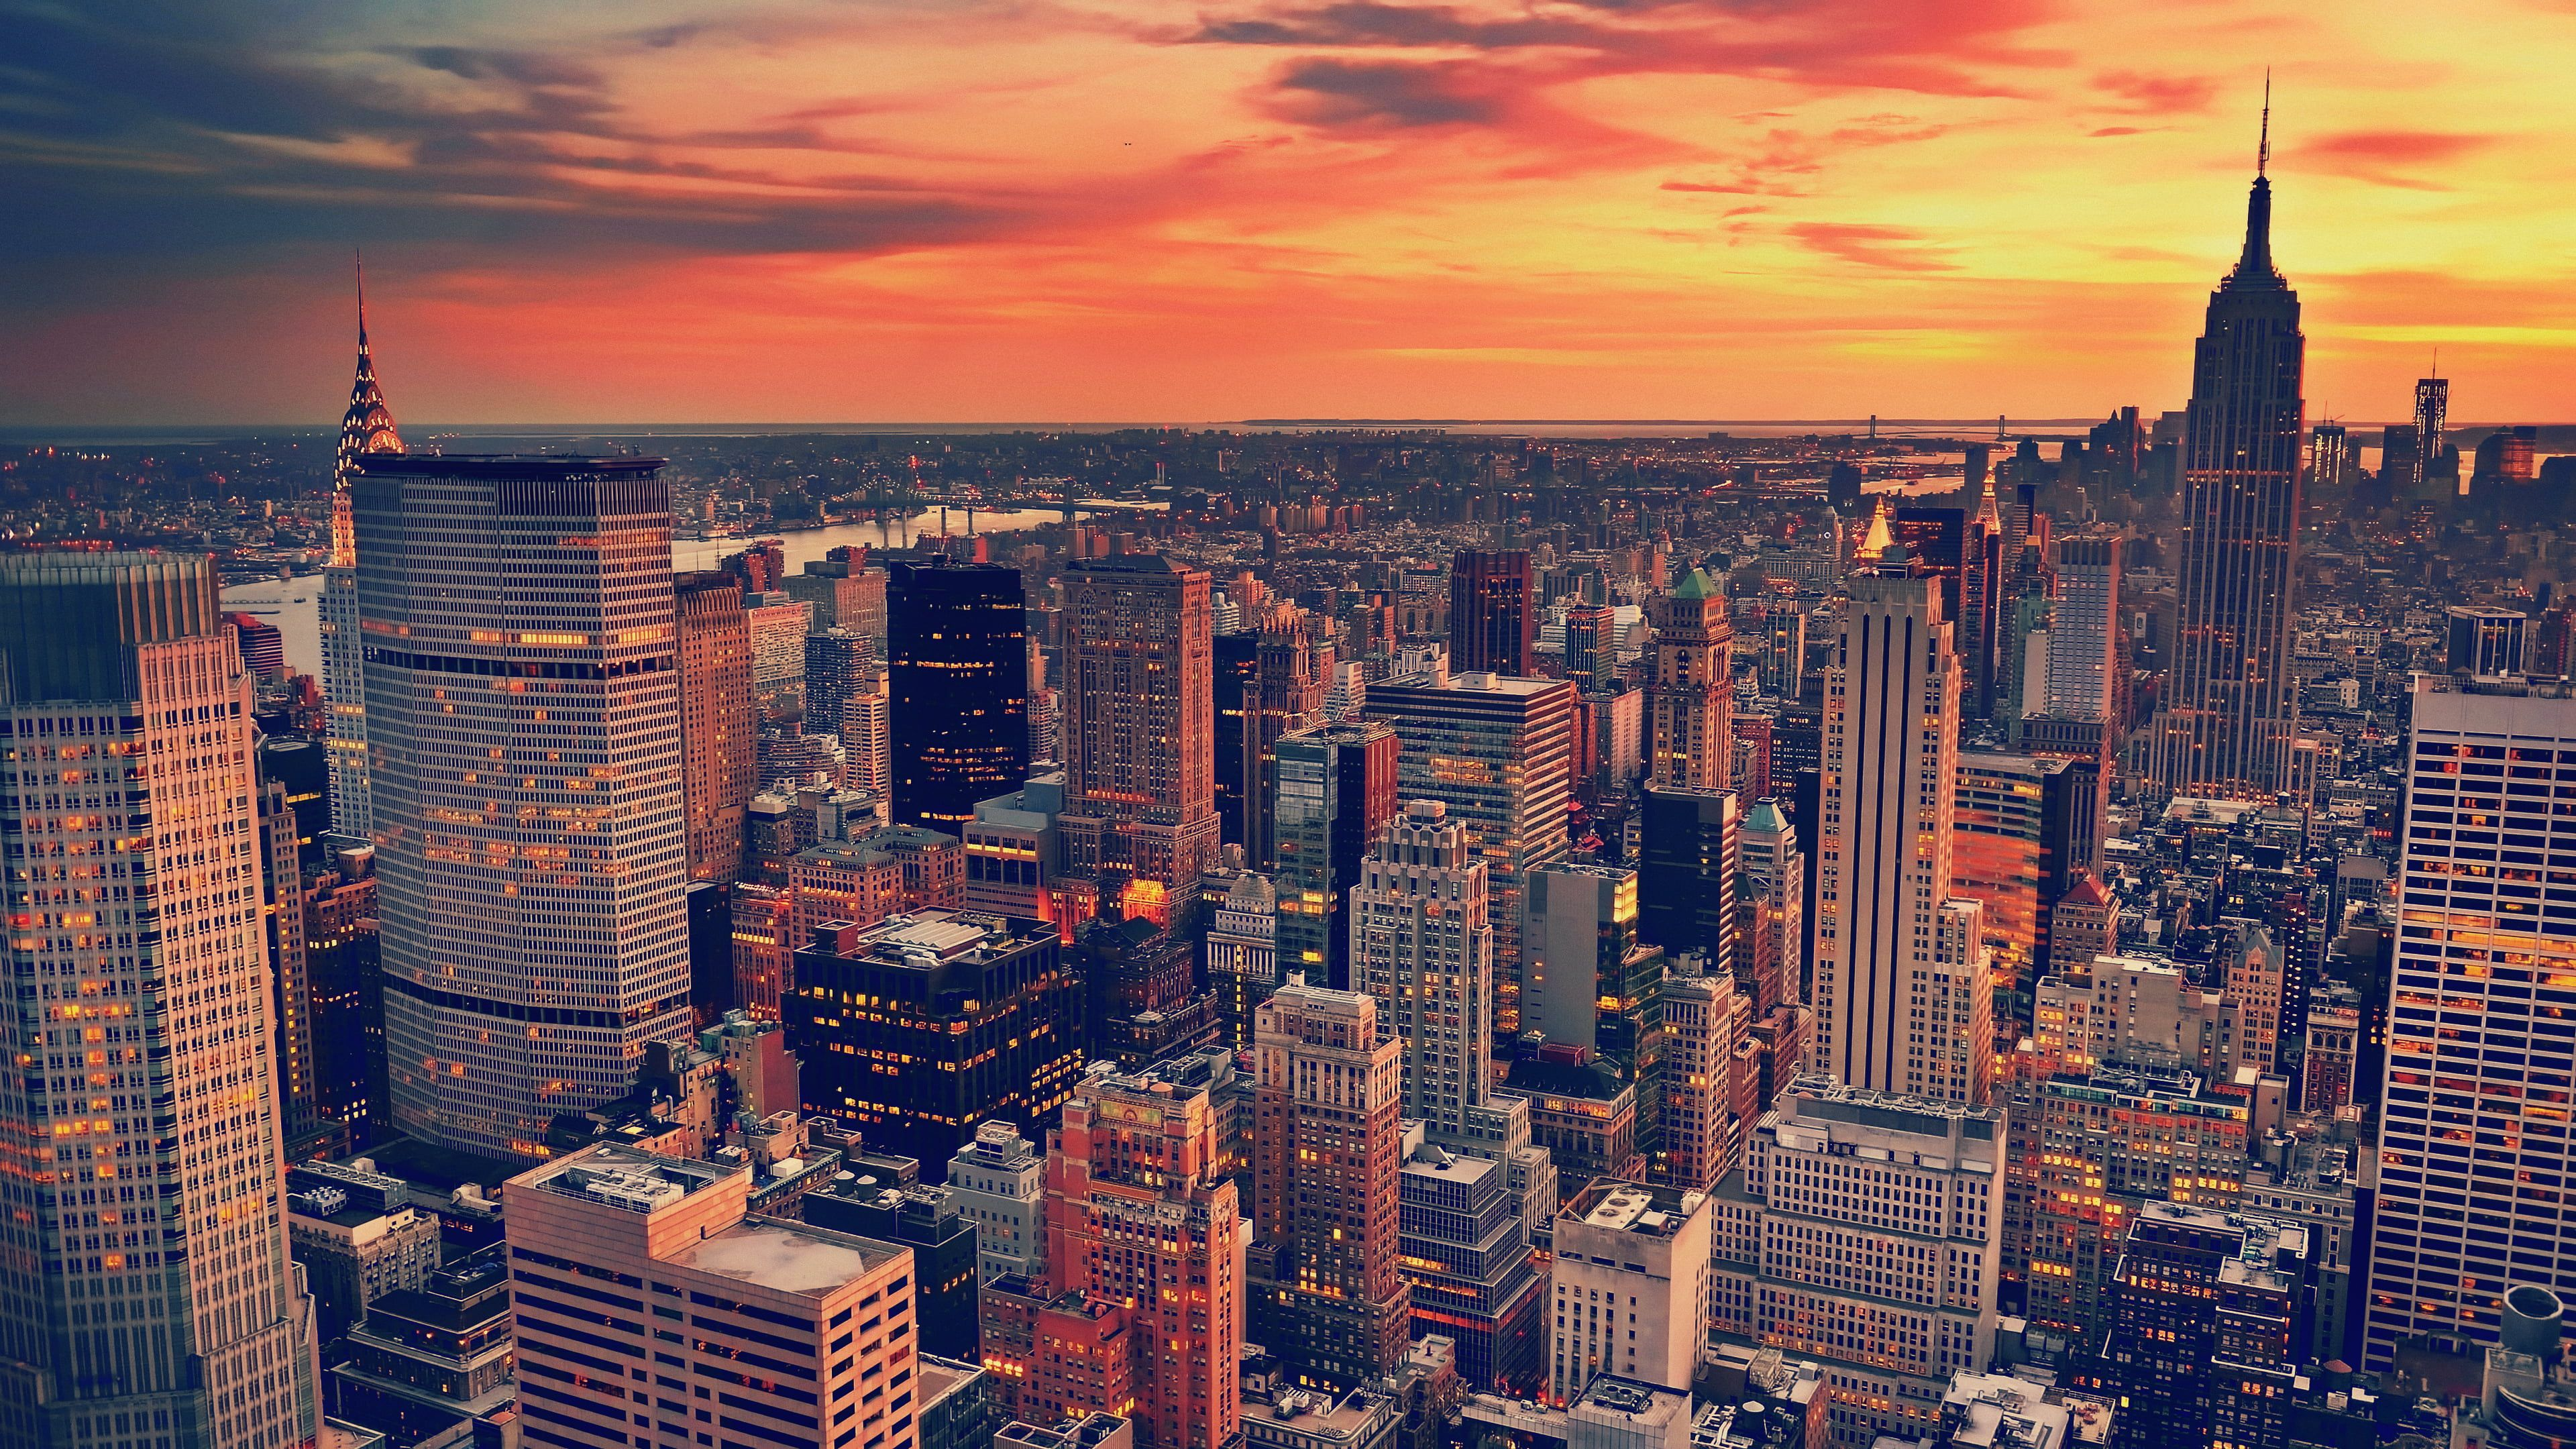 Aerial View Photography New York City Building Cityscape New York City Sunset 4k Wallpaper Hdwallpaper New York City Buildings Sunset City City Wallpaper